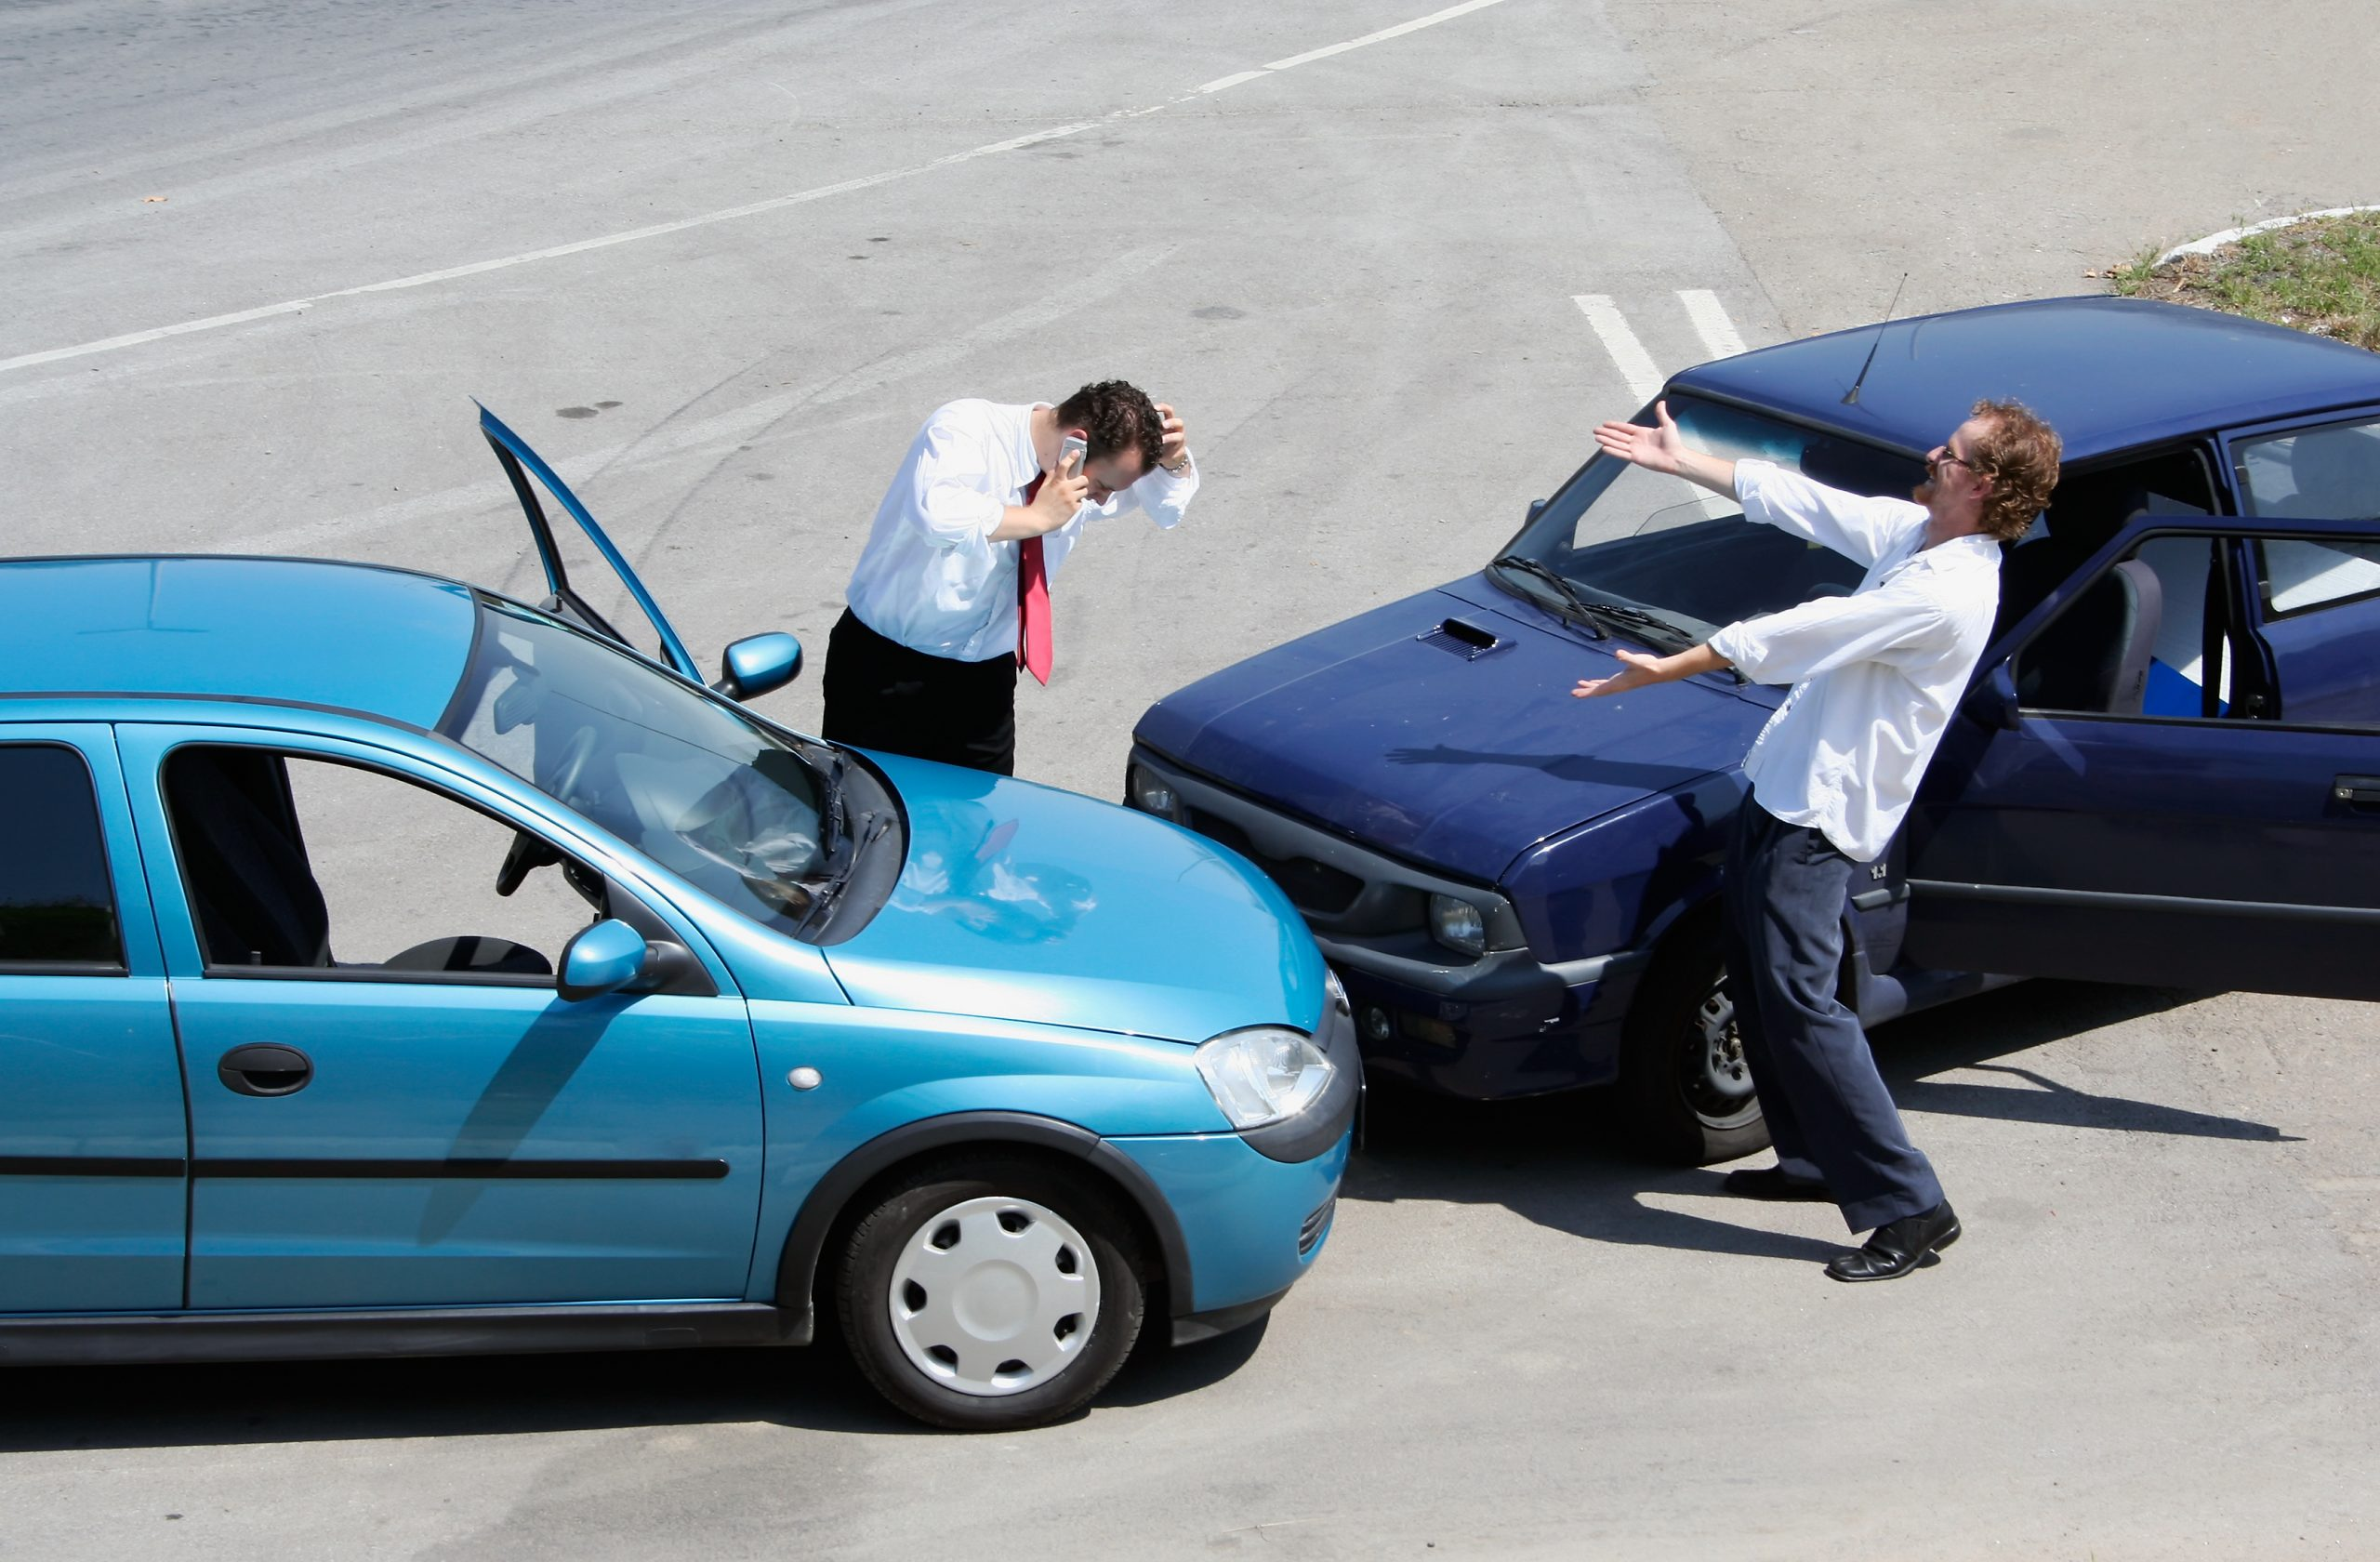 What should you do if you witness a car accident?